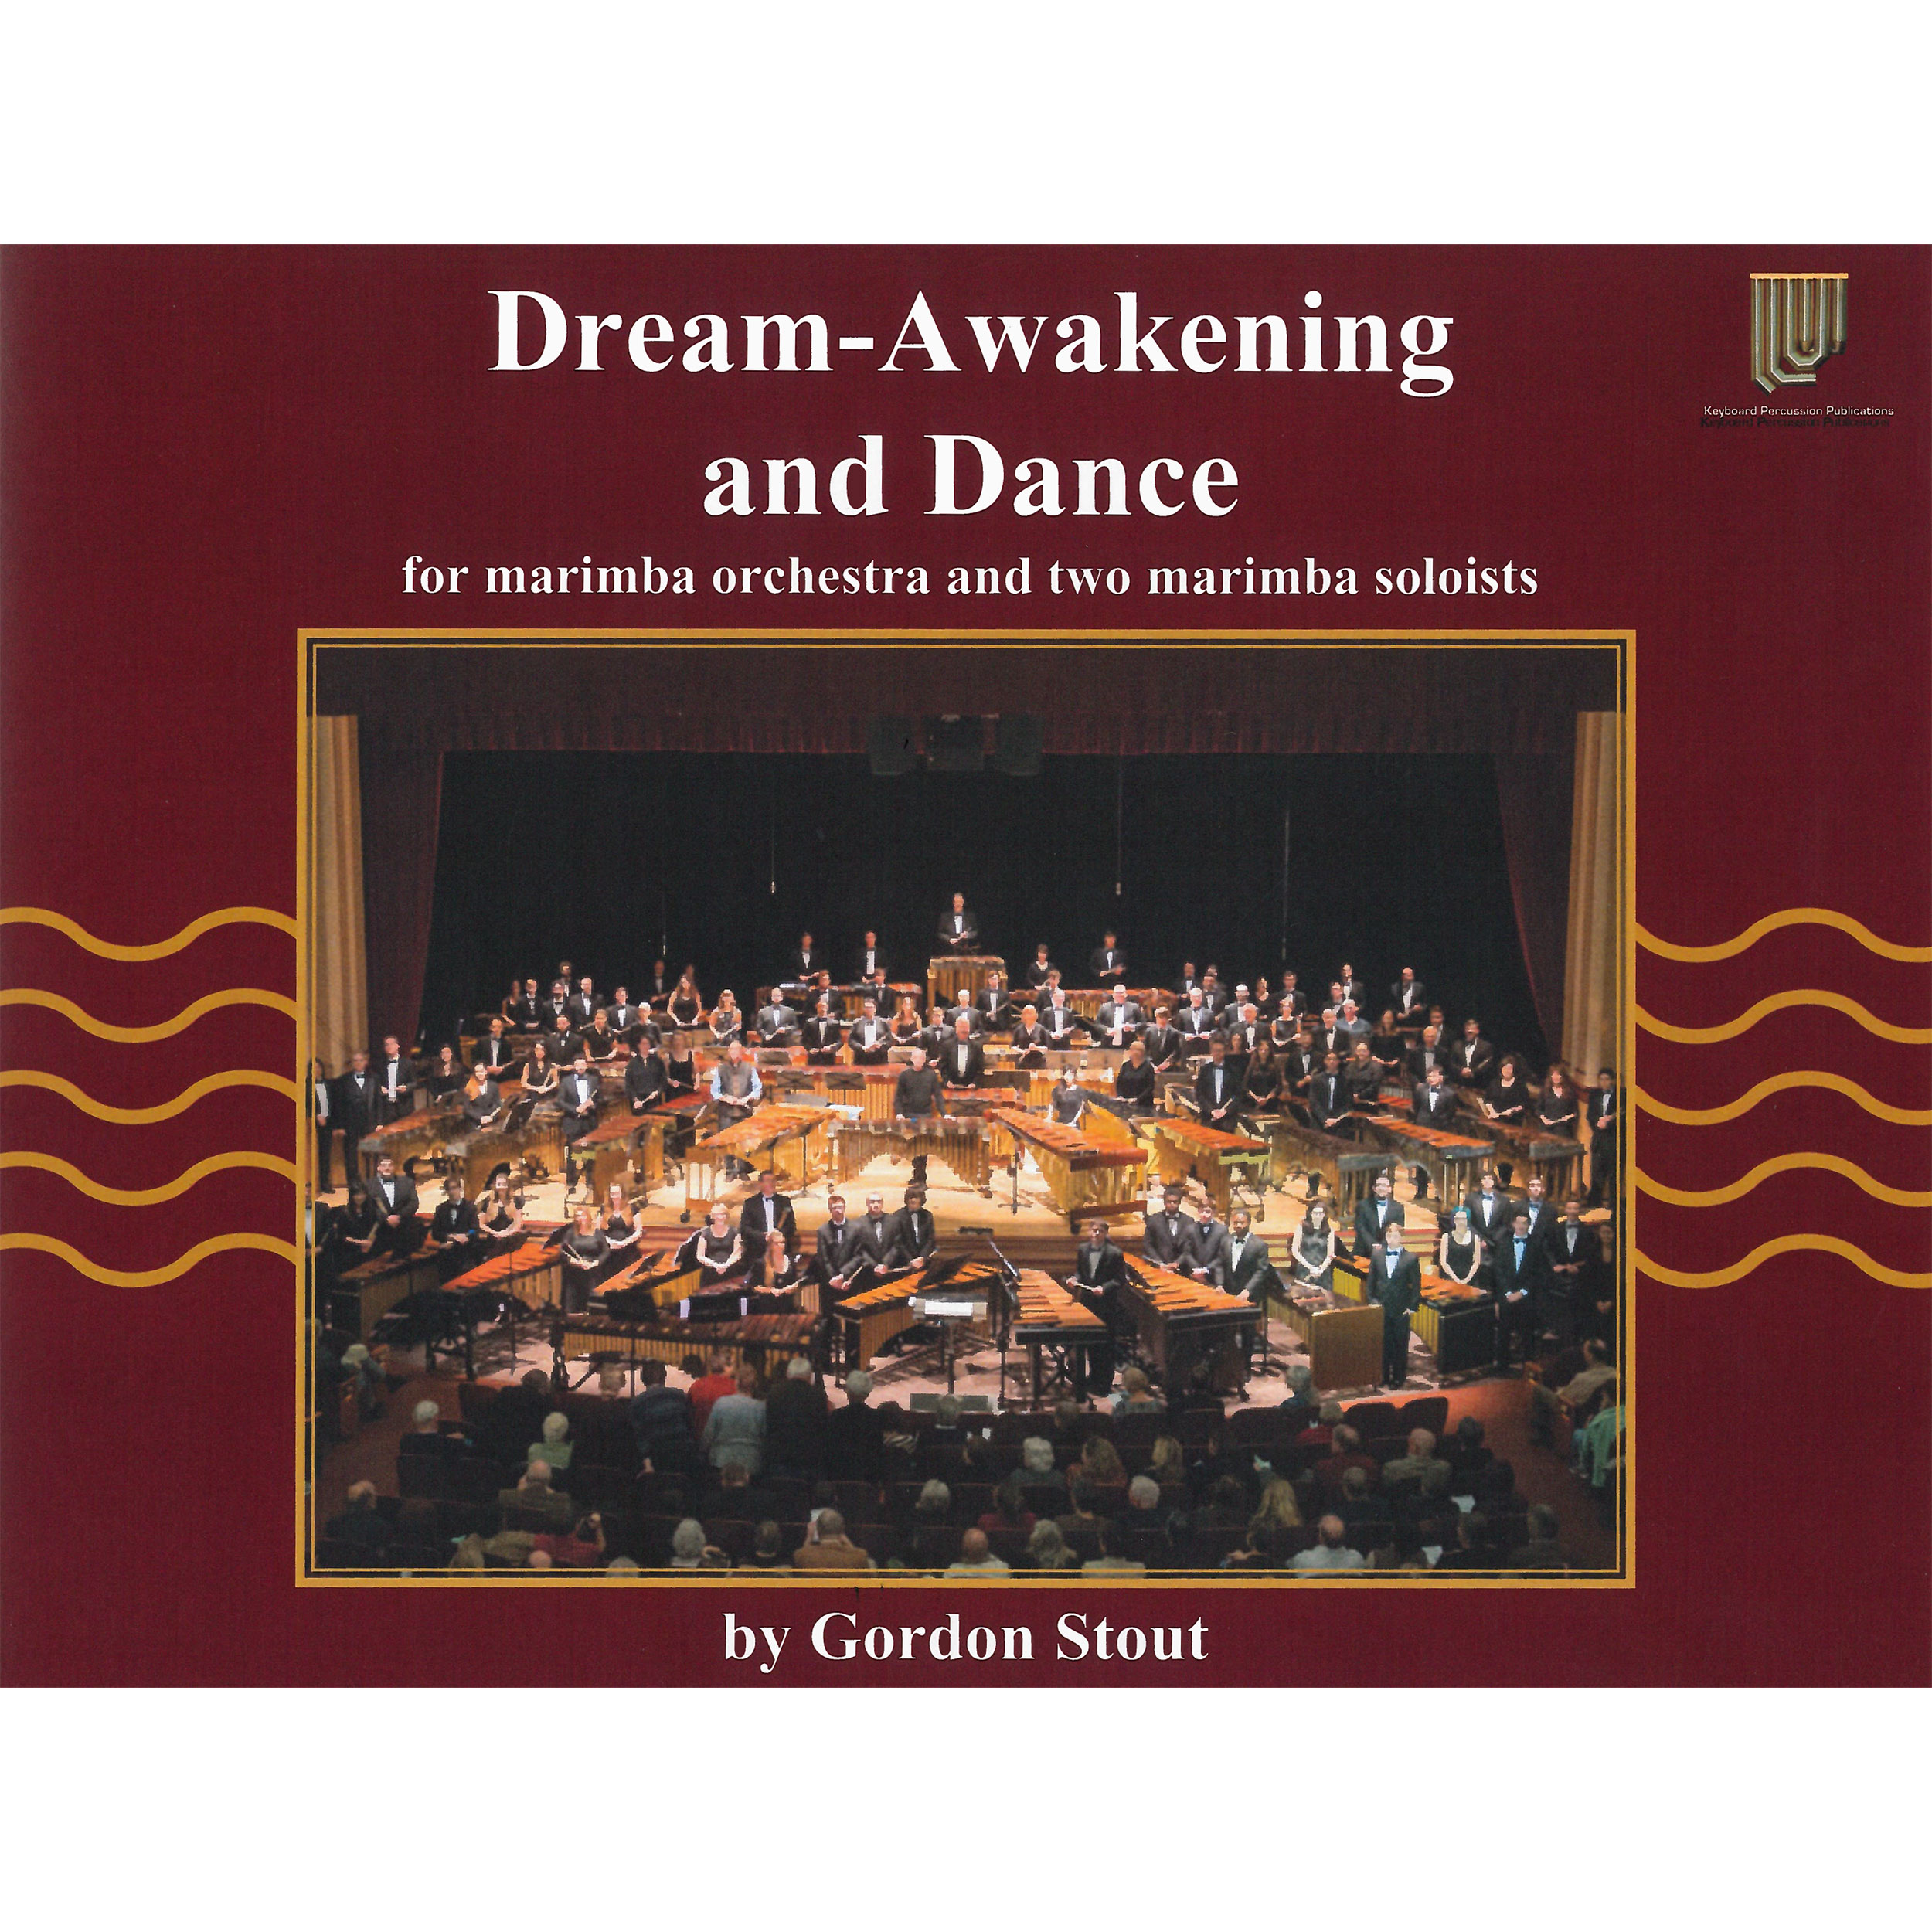 Dream-Awakening and Dance by Gordon Stout